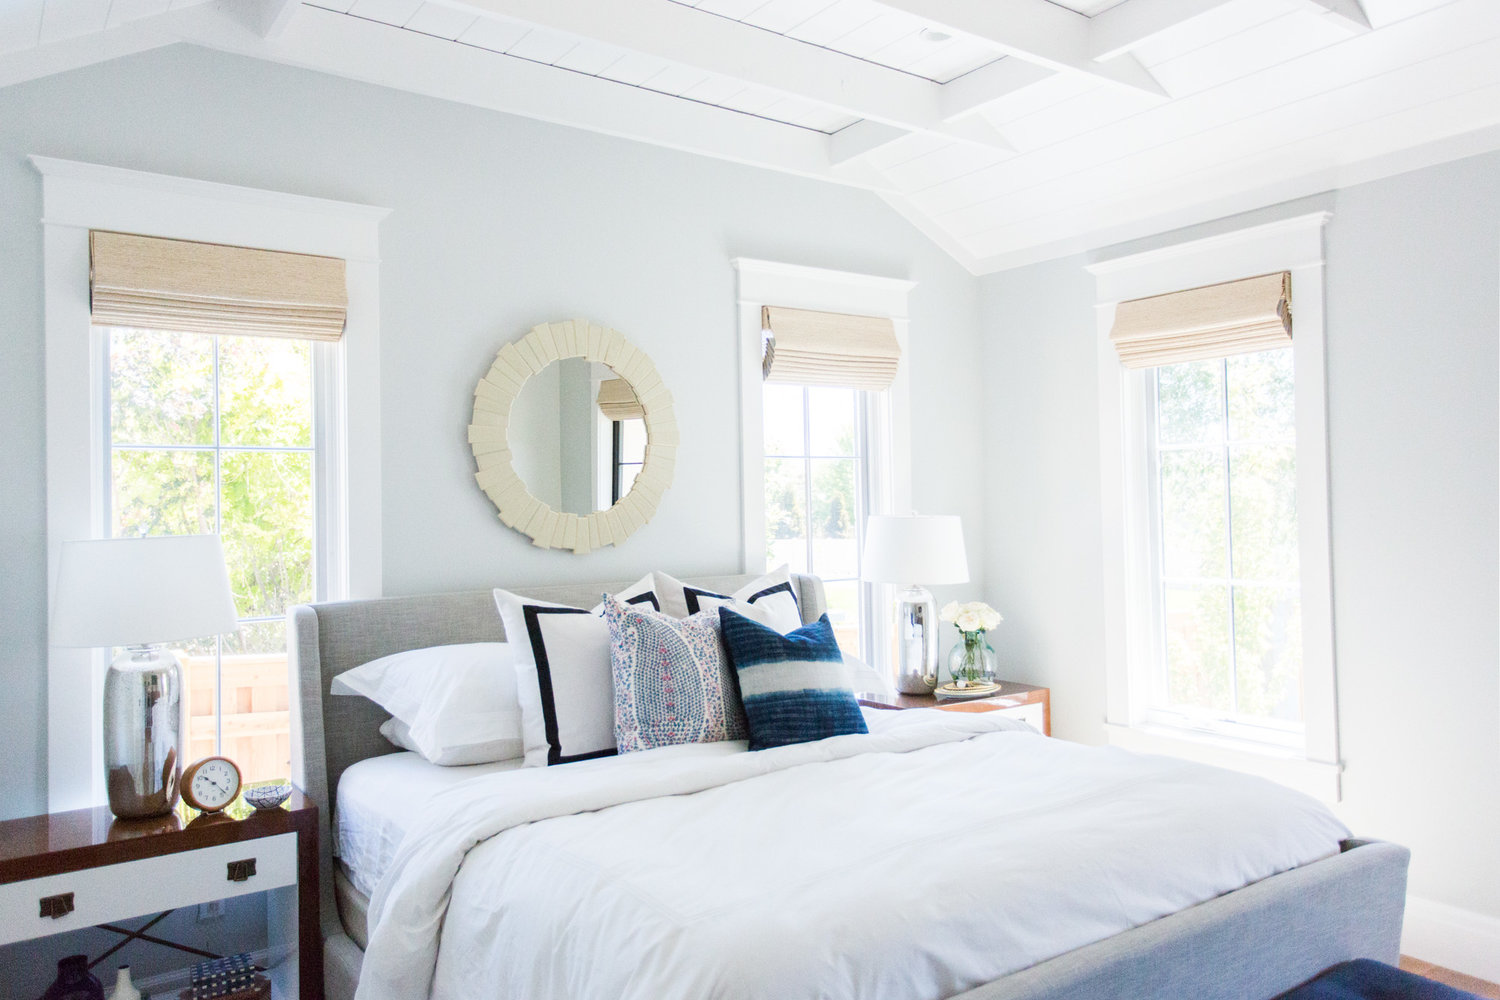 White bed with headboard and mirror on back wall